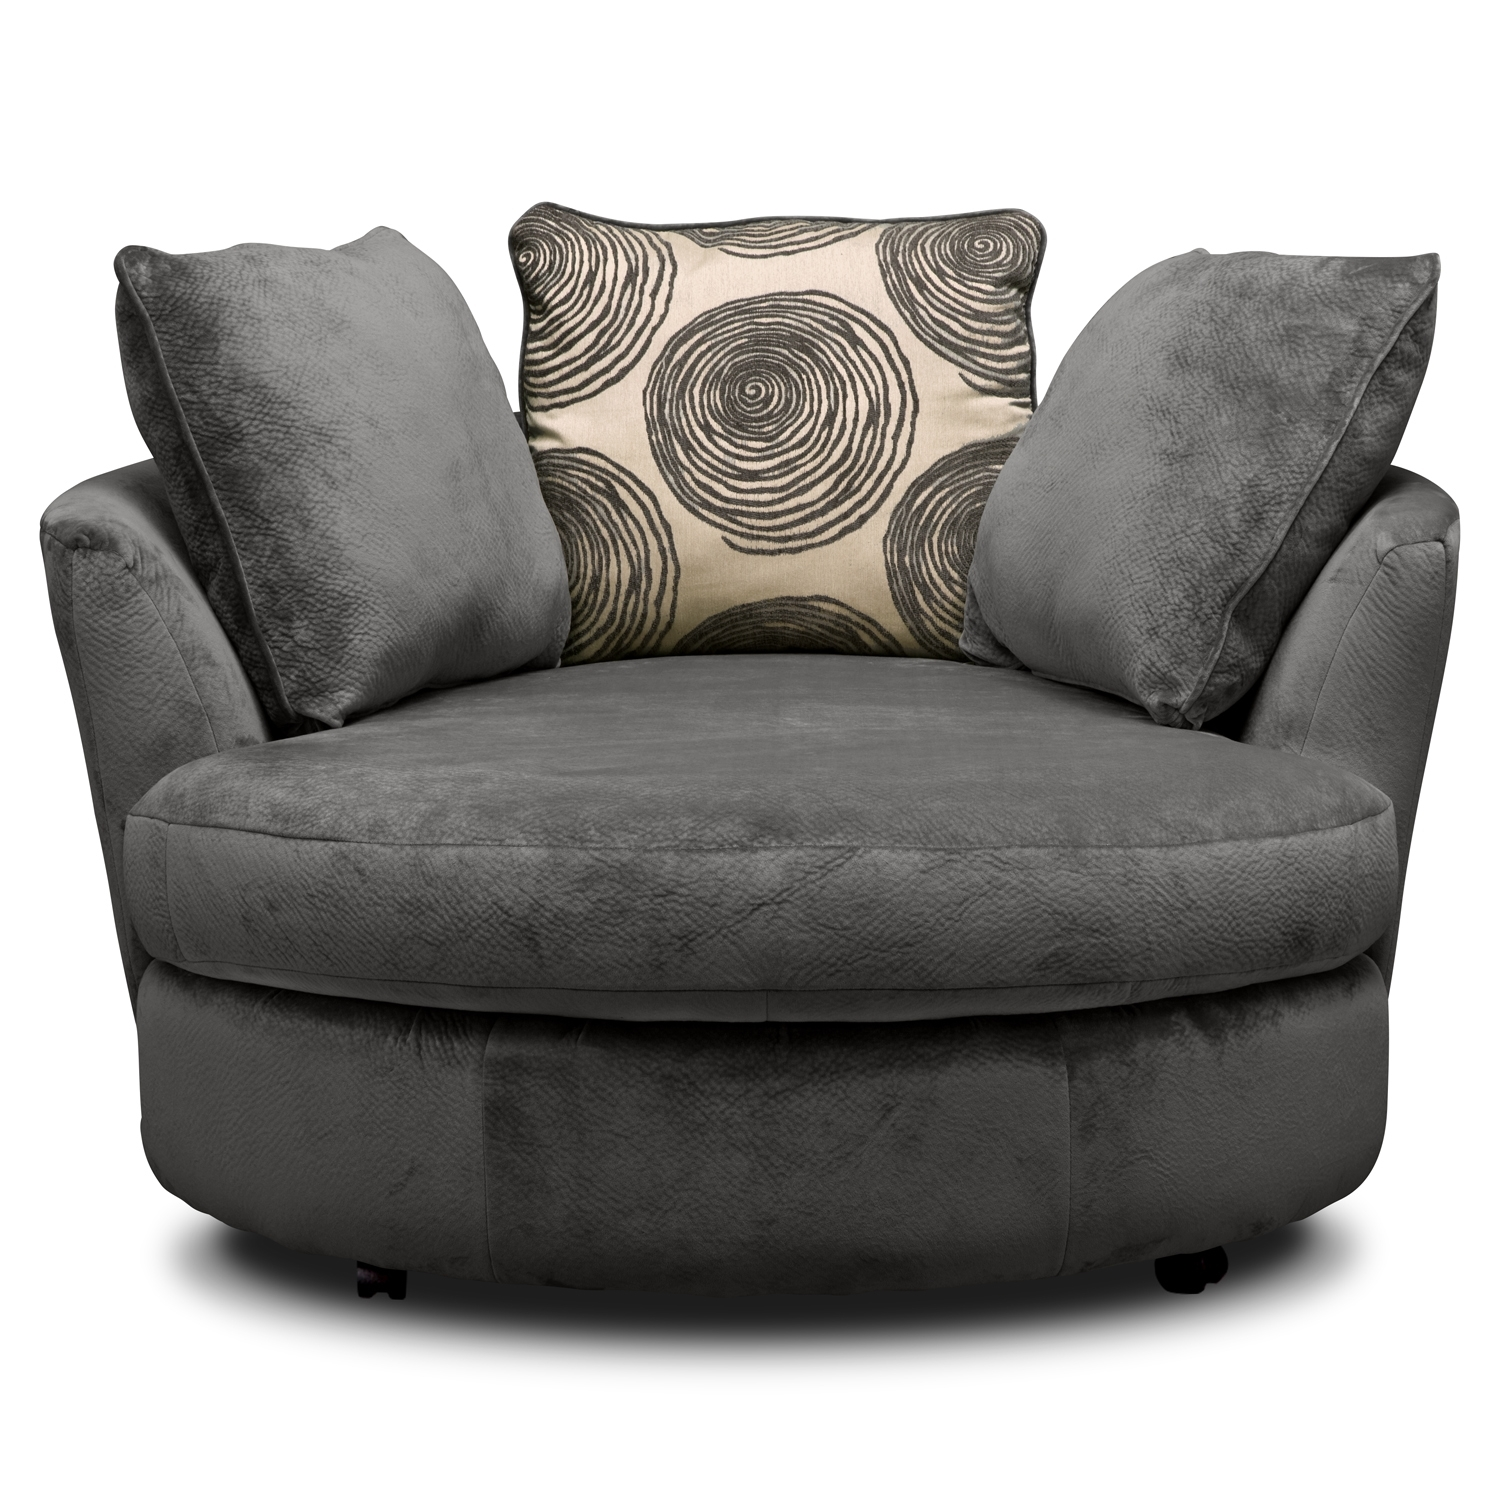 Sofas Center Stupendous Circle Sofa Chair Pictures Design Round For Circle Sofa Chairs (Image 15 of 15)